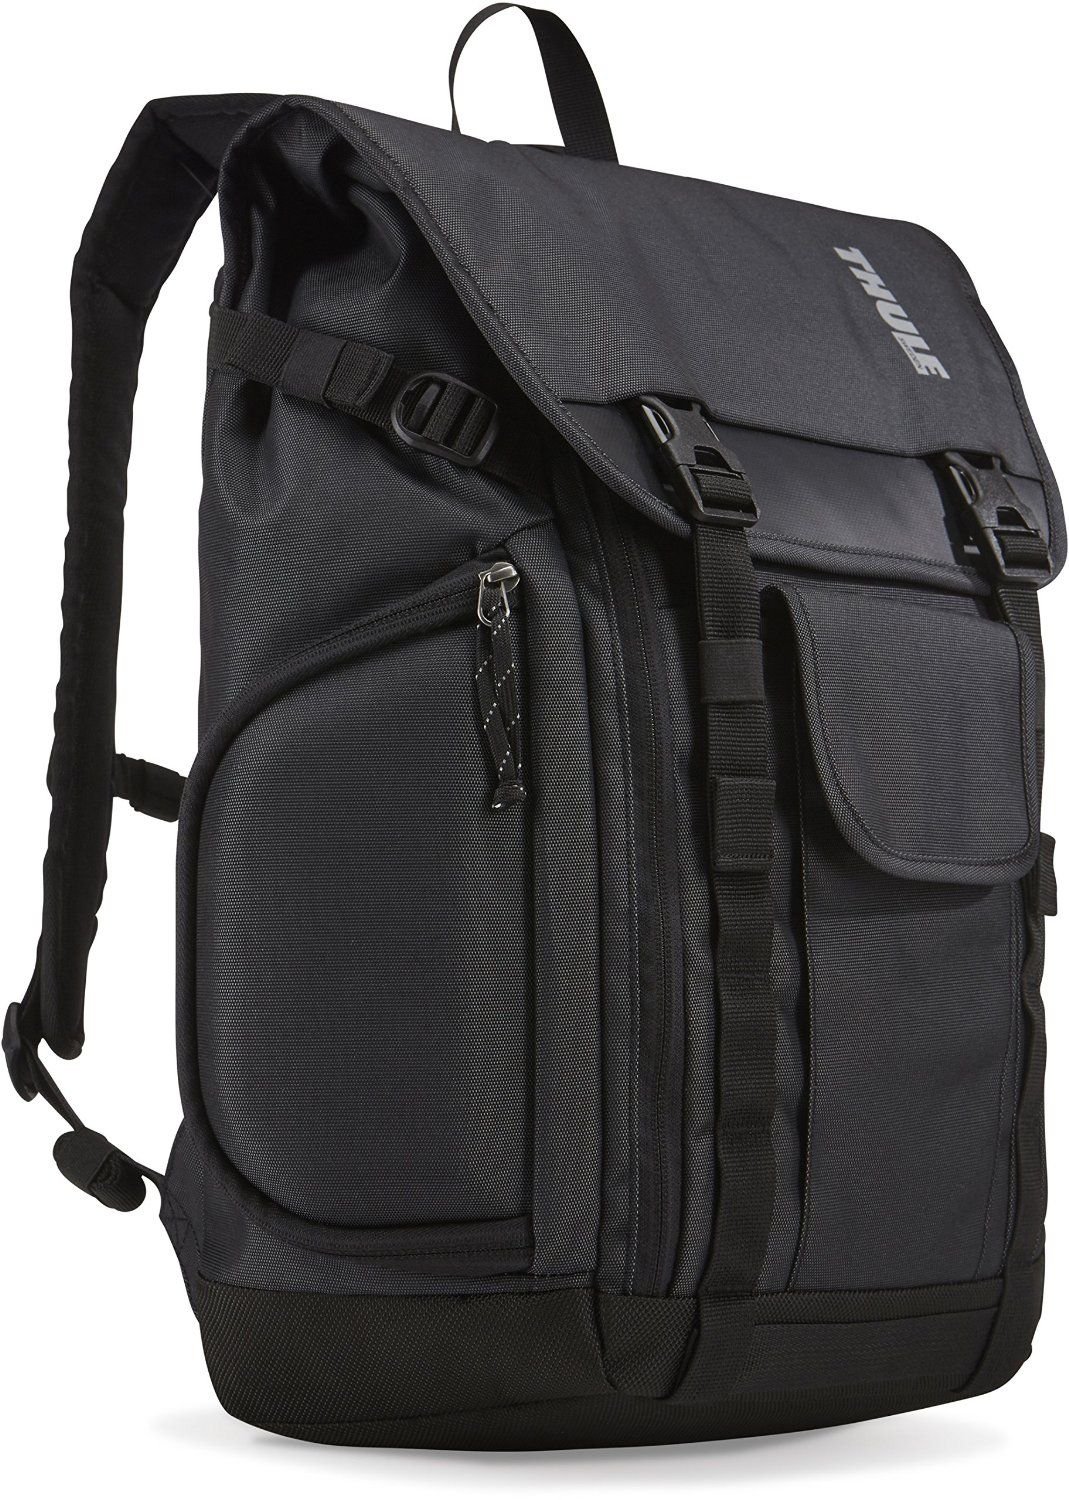 Thule Subterra Daypack     Find out more details by clicking the image    Best hiking backpack bcbb76caac451